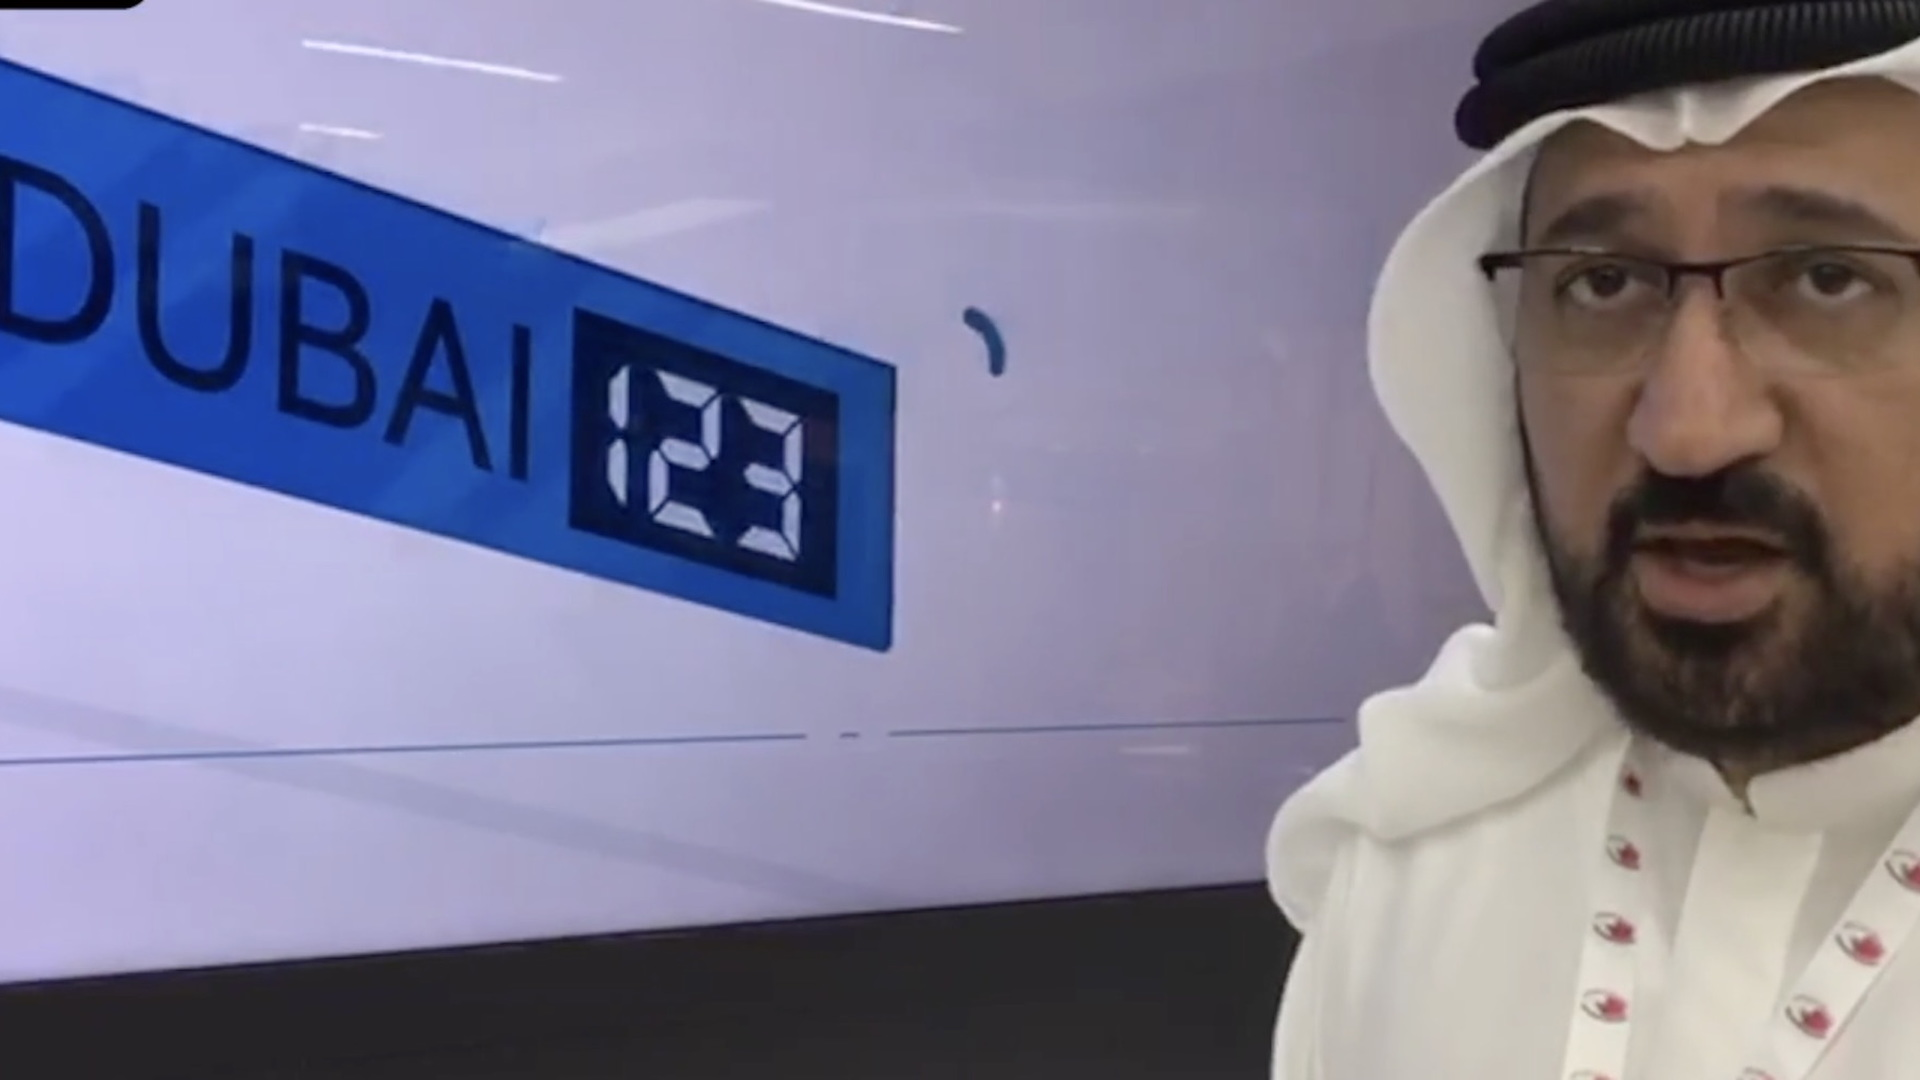 Dubai to test digital license plates